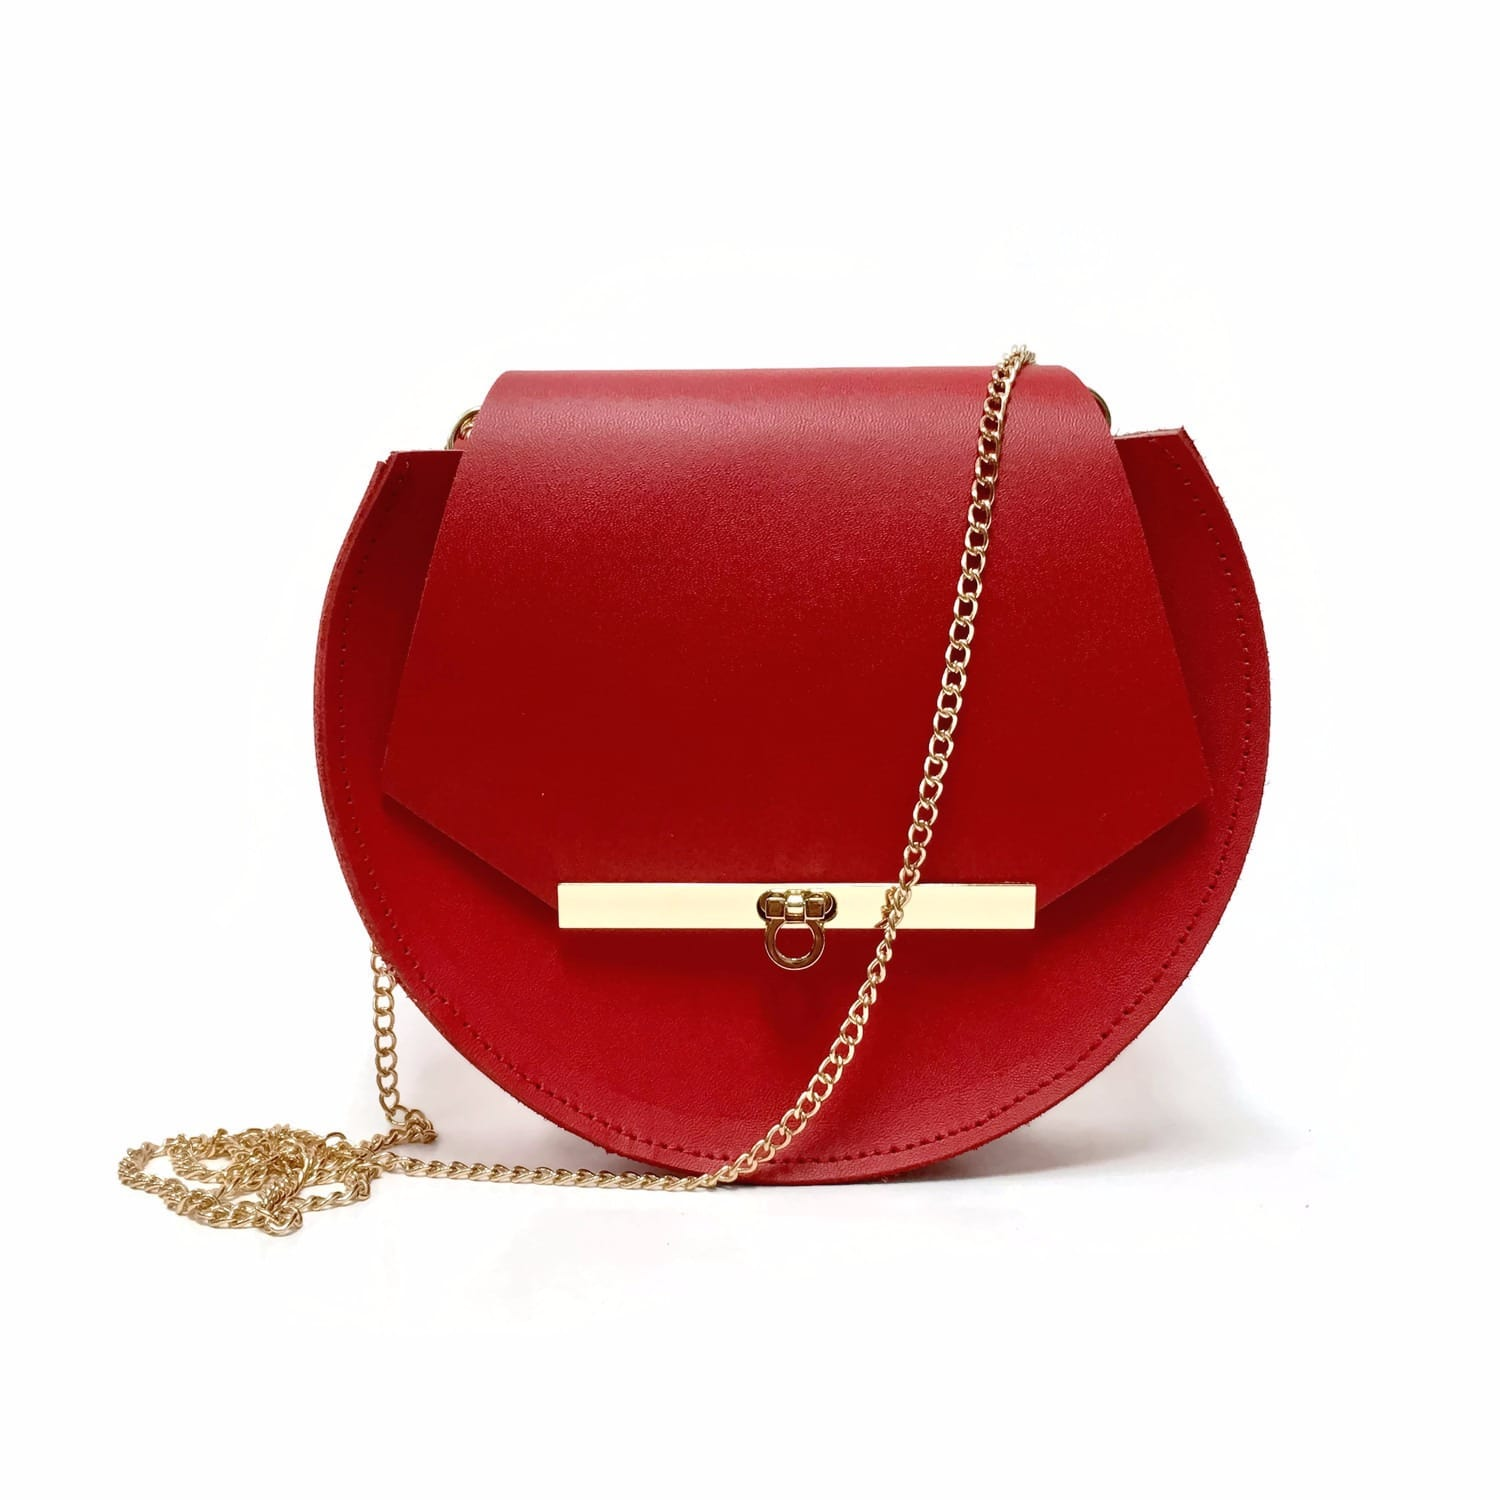 Loel Mini Military Bee Chain Bag Clutch In Poppy Red Image